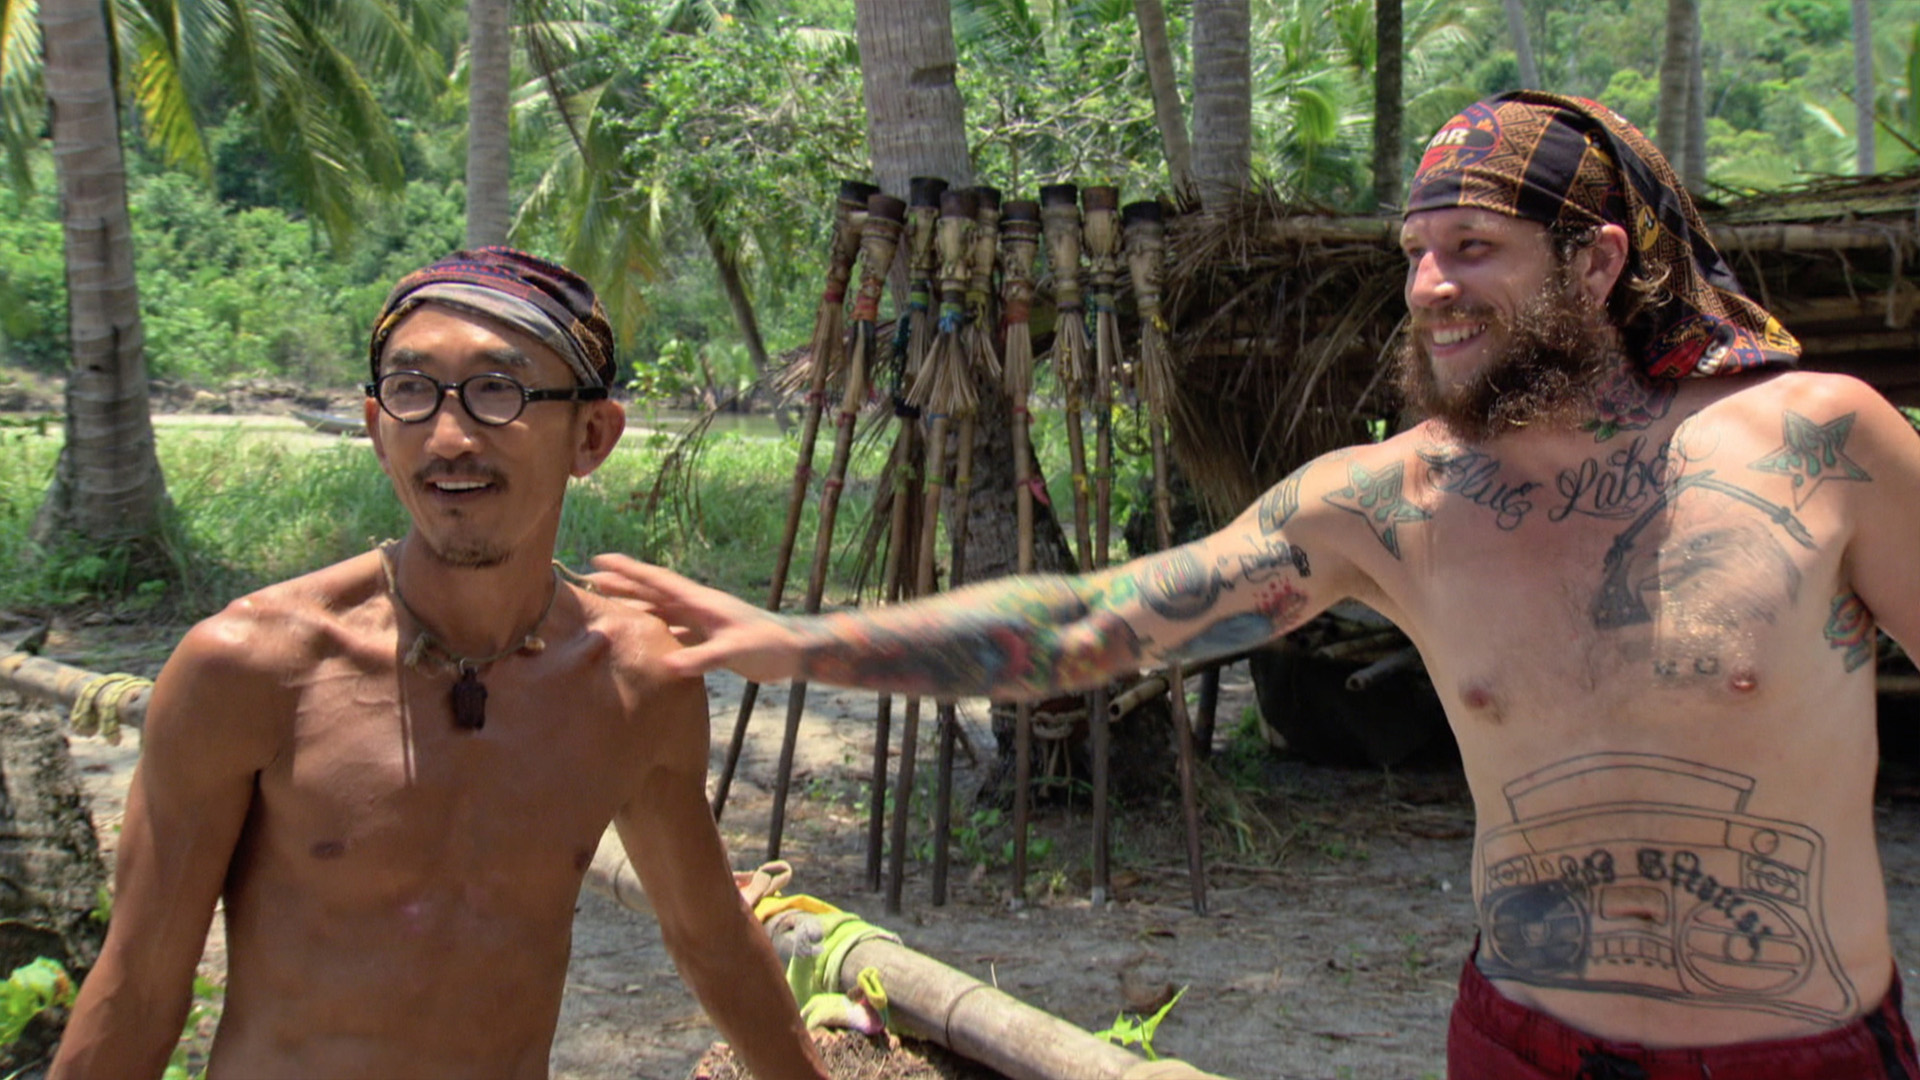 Tai and Jason joke around between challenges.